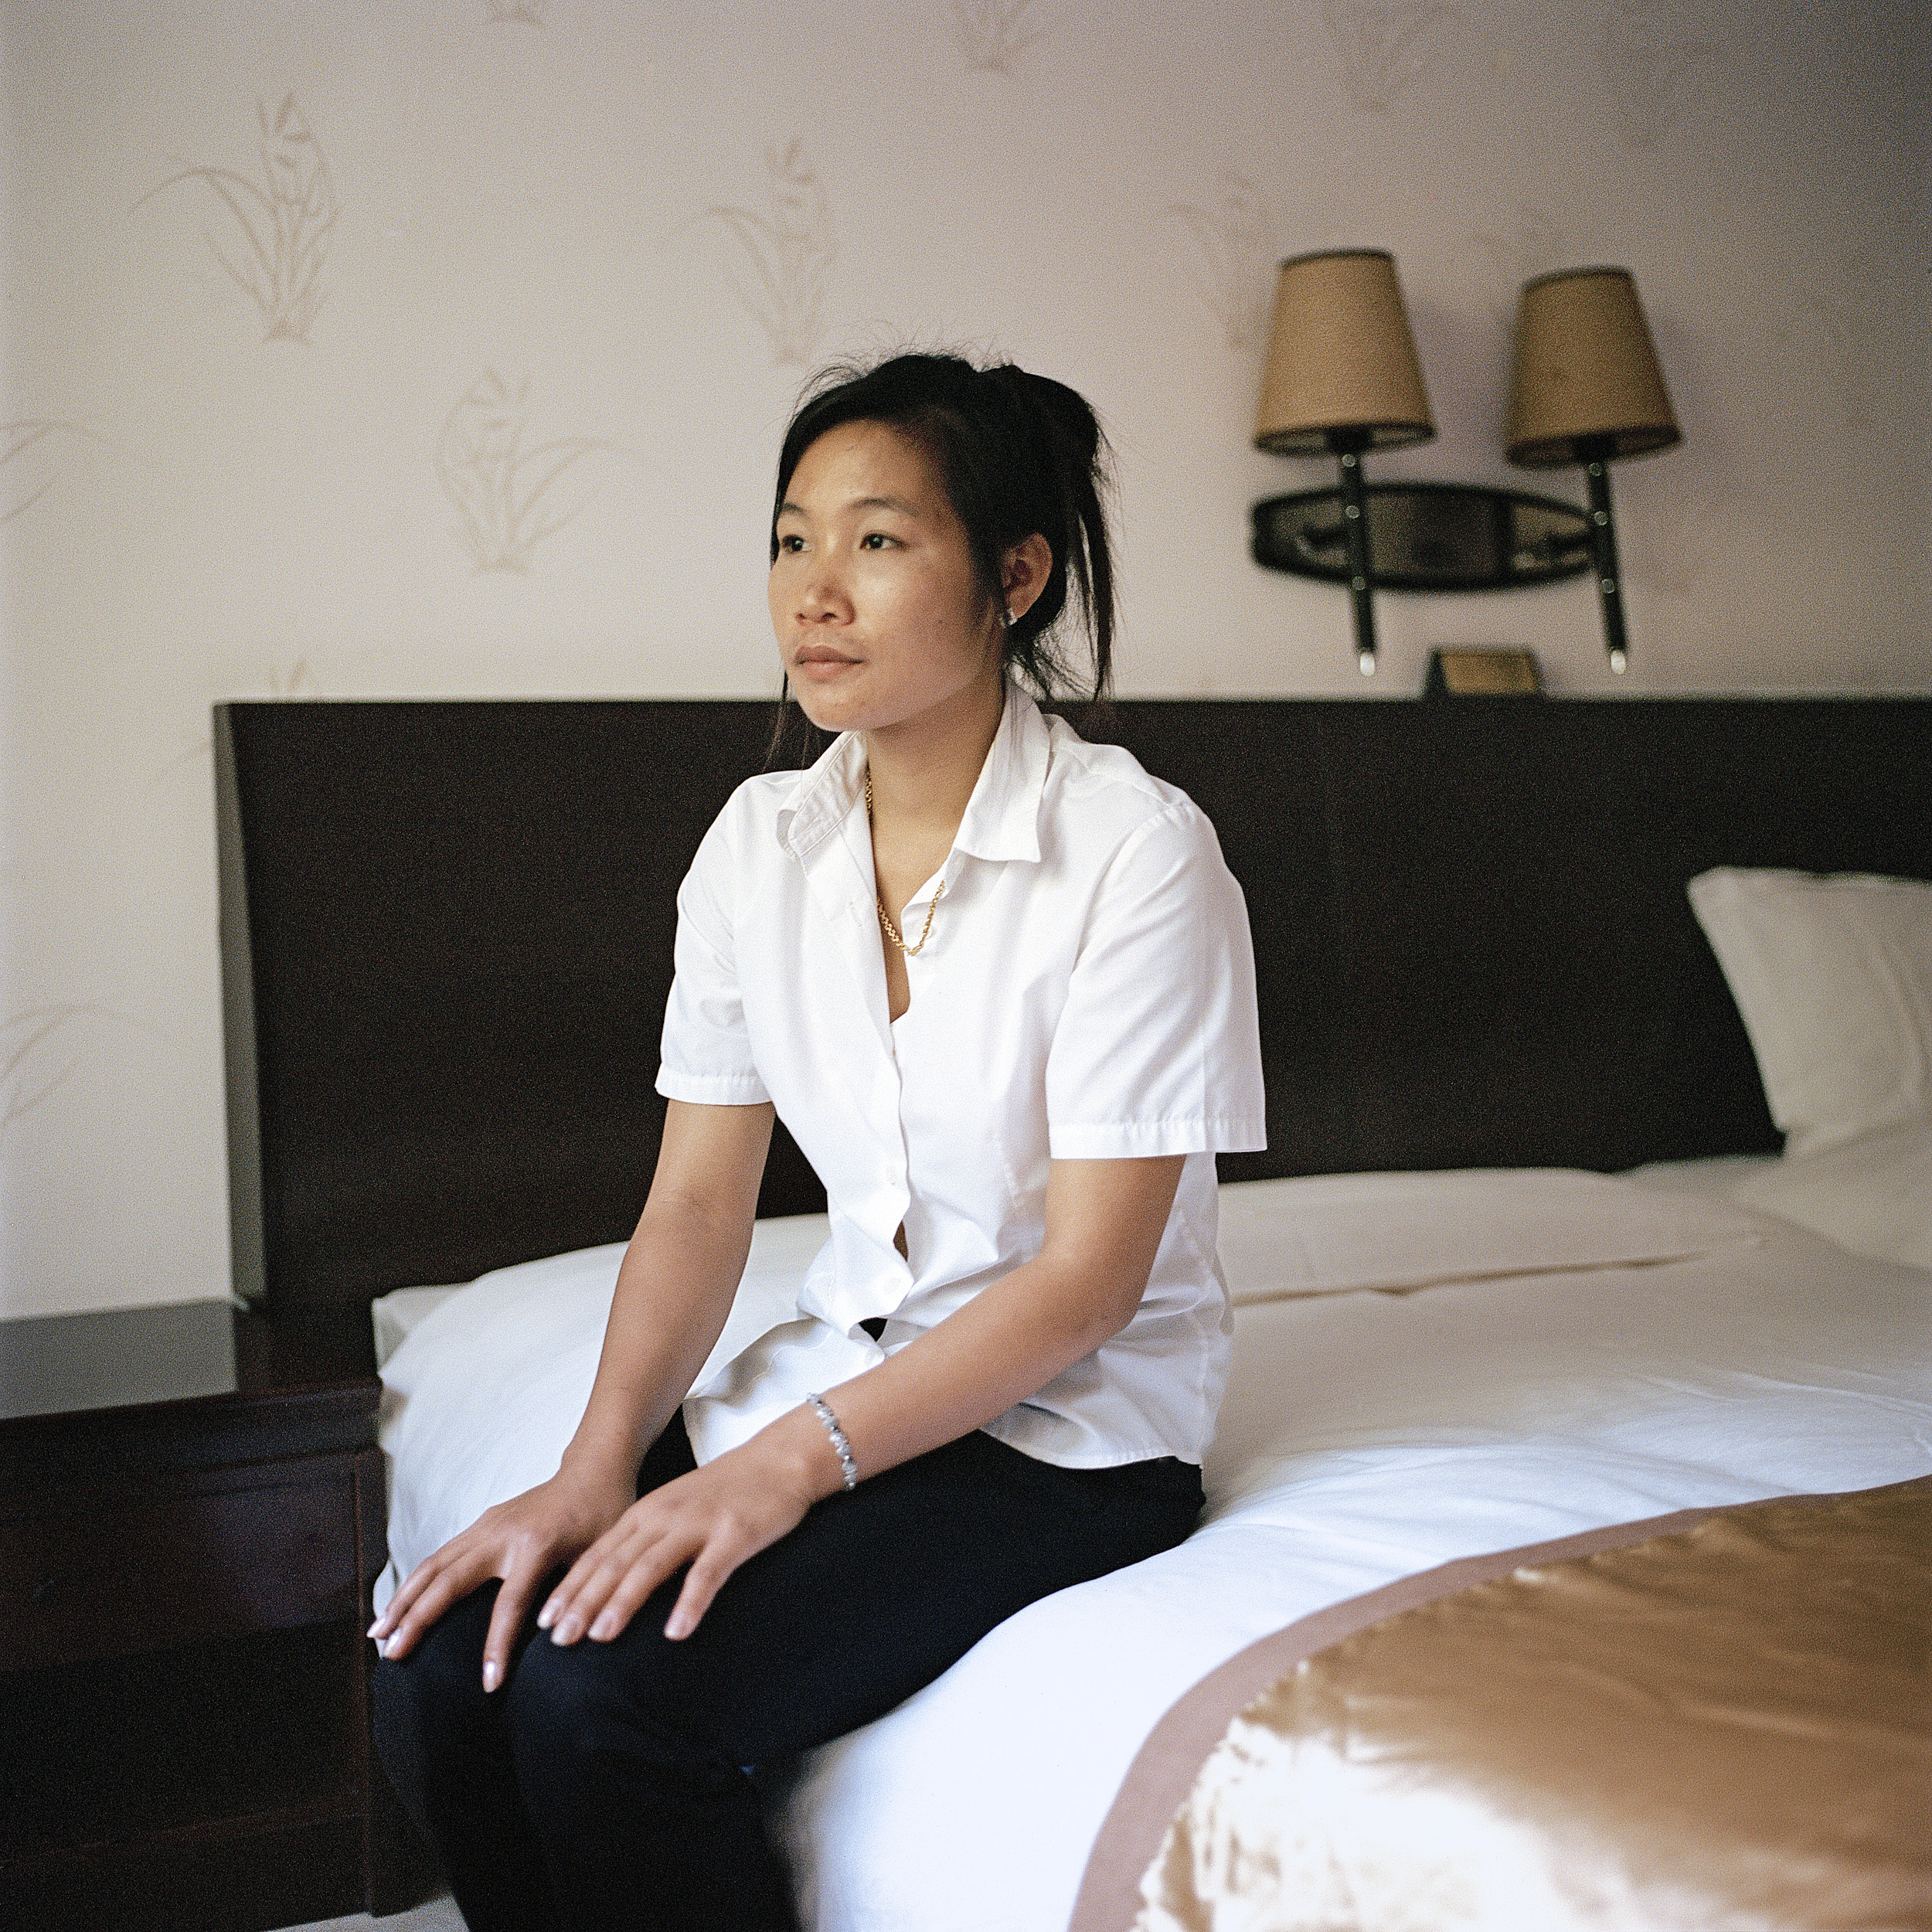 1. Hotel operator Wei Qixing, from Fujian in China, owns a hotel in the Golden City. Once a brisk business, his hotel is now vacant except for him and two of his employees. / 2. Miss Liang, a 22 year old from Luang Prabang, is one of the 12 housekeepers remaining in the Golden City Casino Hotel. At its peak, the hotel had 100 housekeepers, mostly from China.